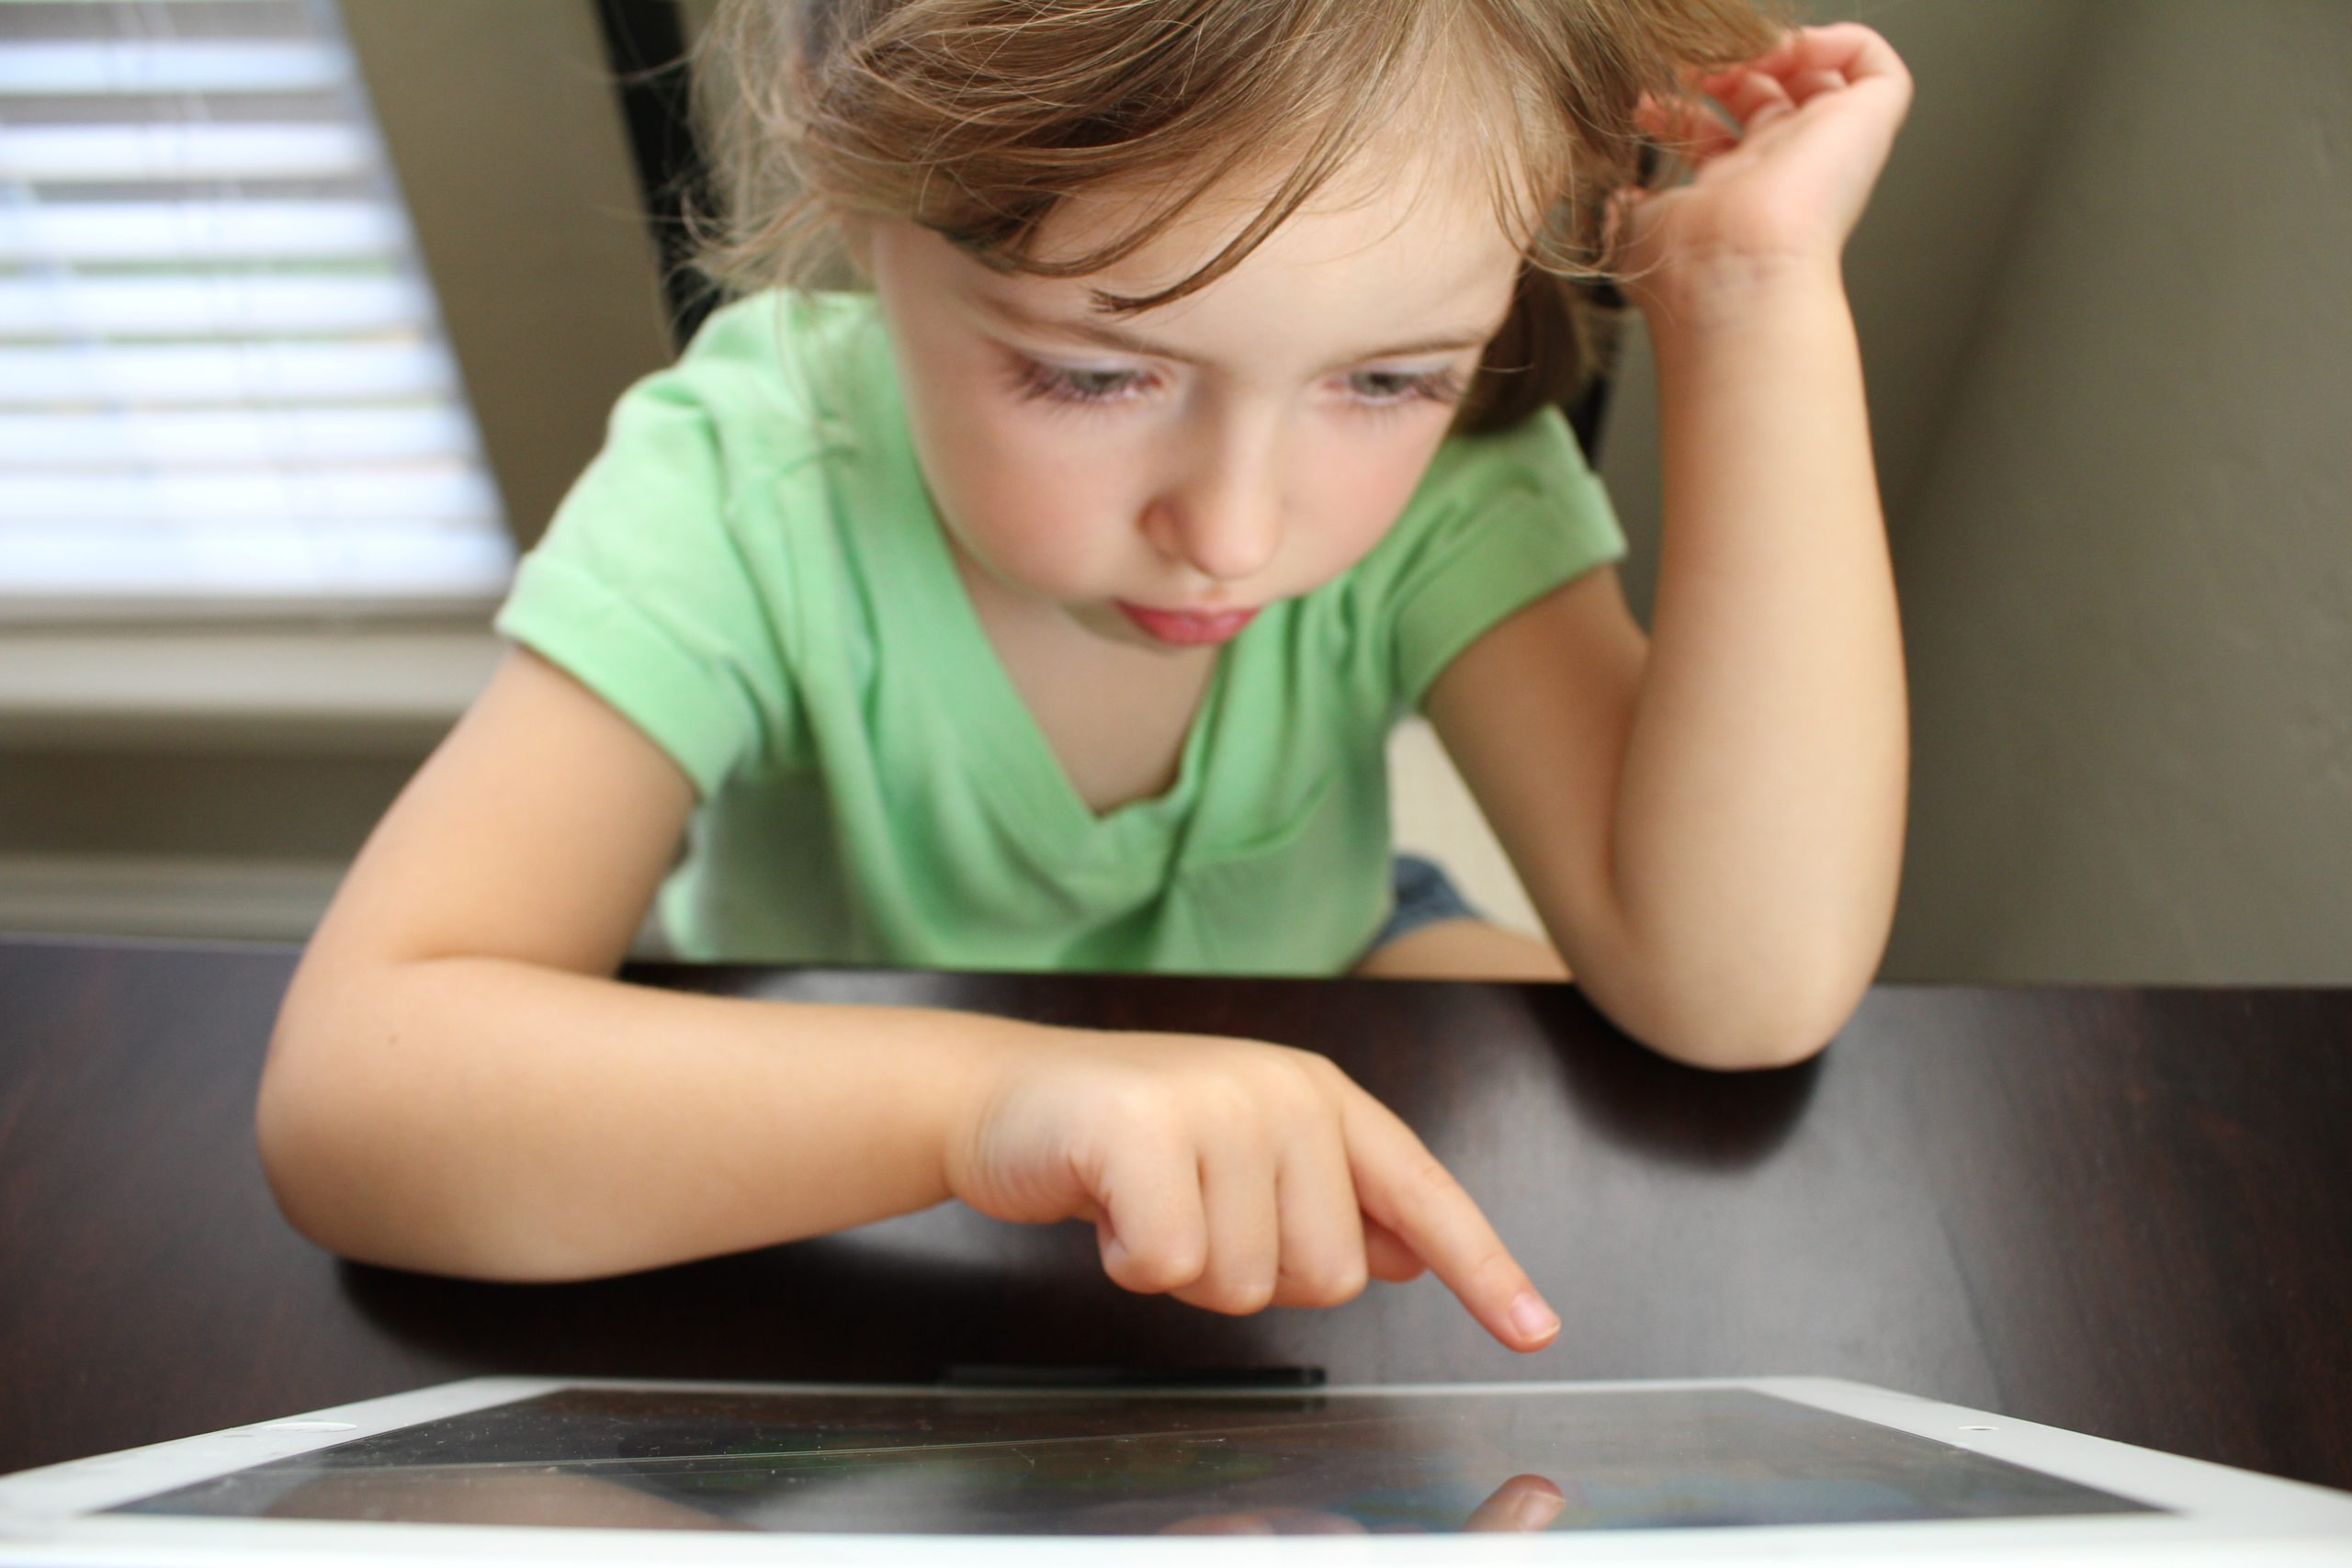 girl learning using iPad